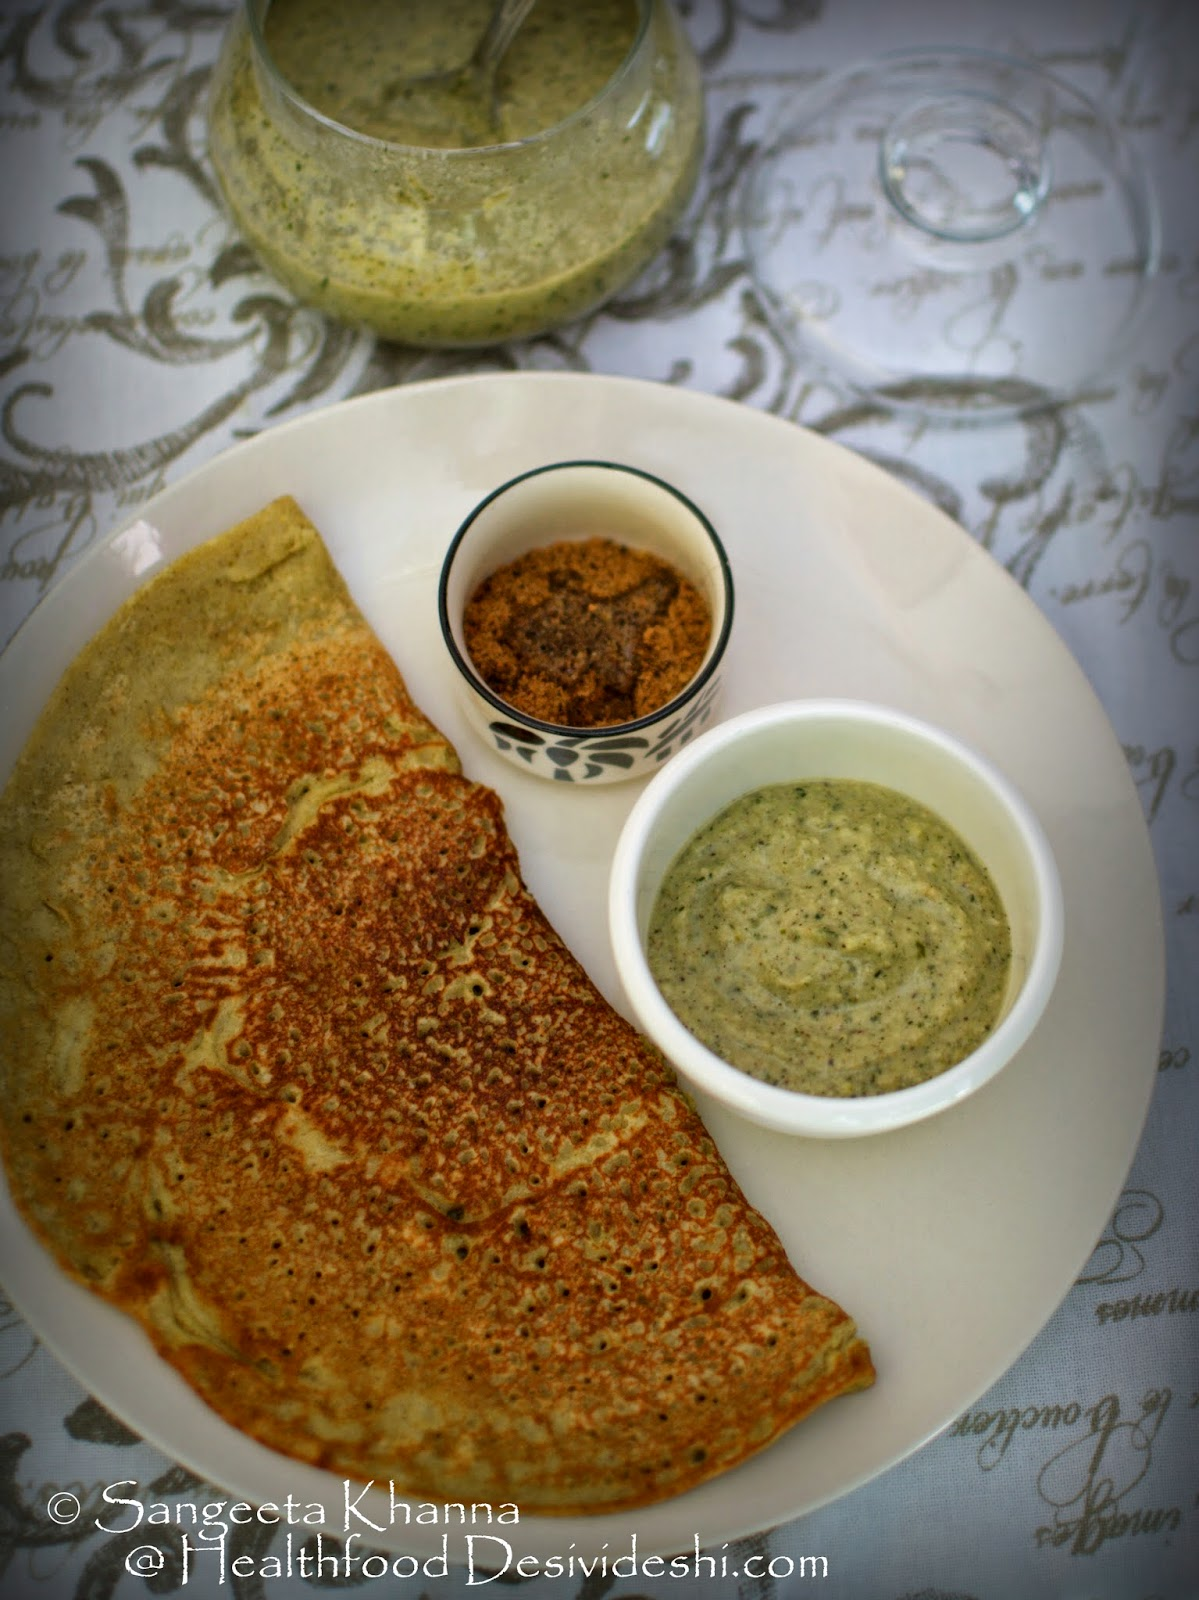 making breakfast dosa interesting with vegetable based chutneys | making chutneys with ivy gourd and long beans